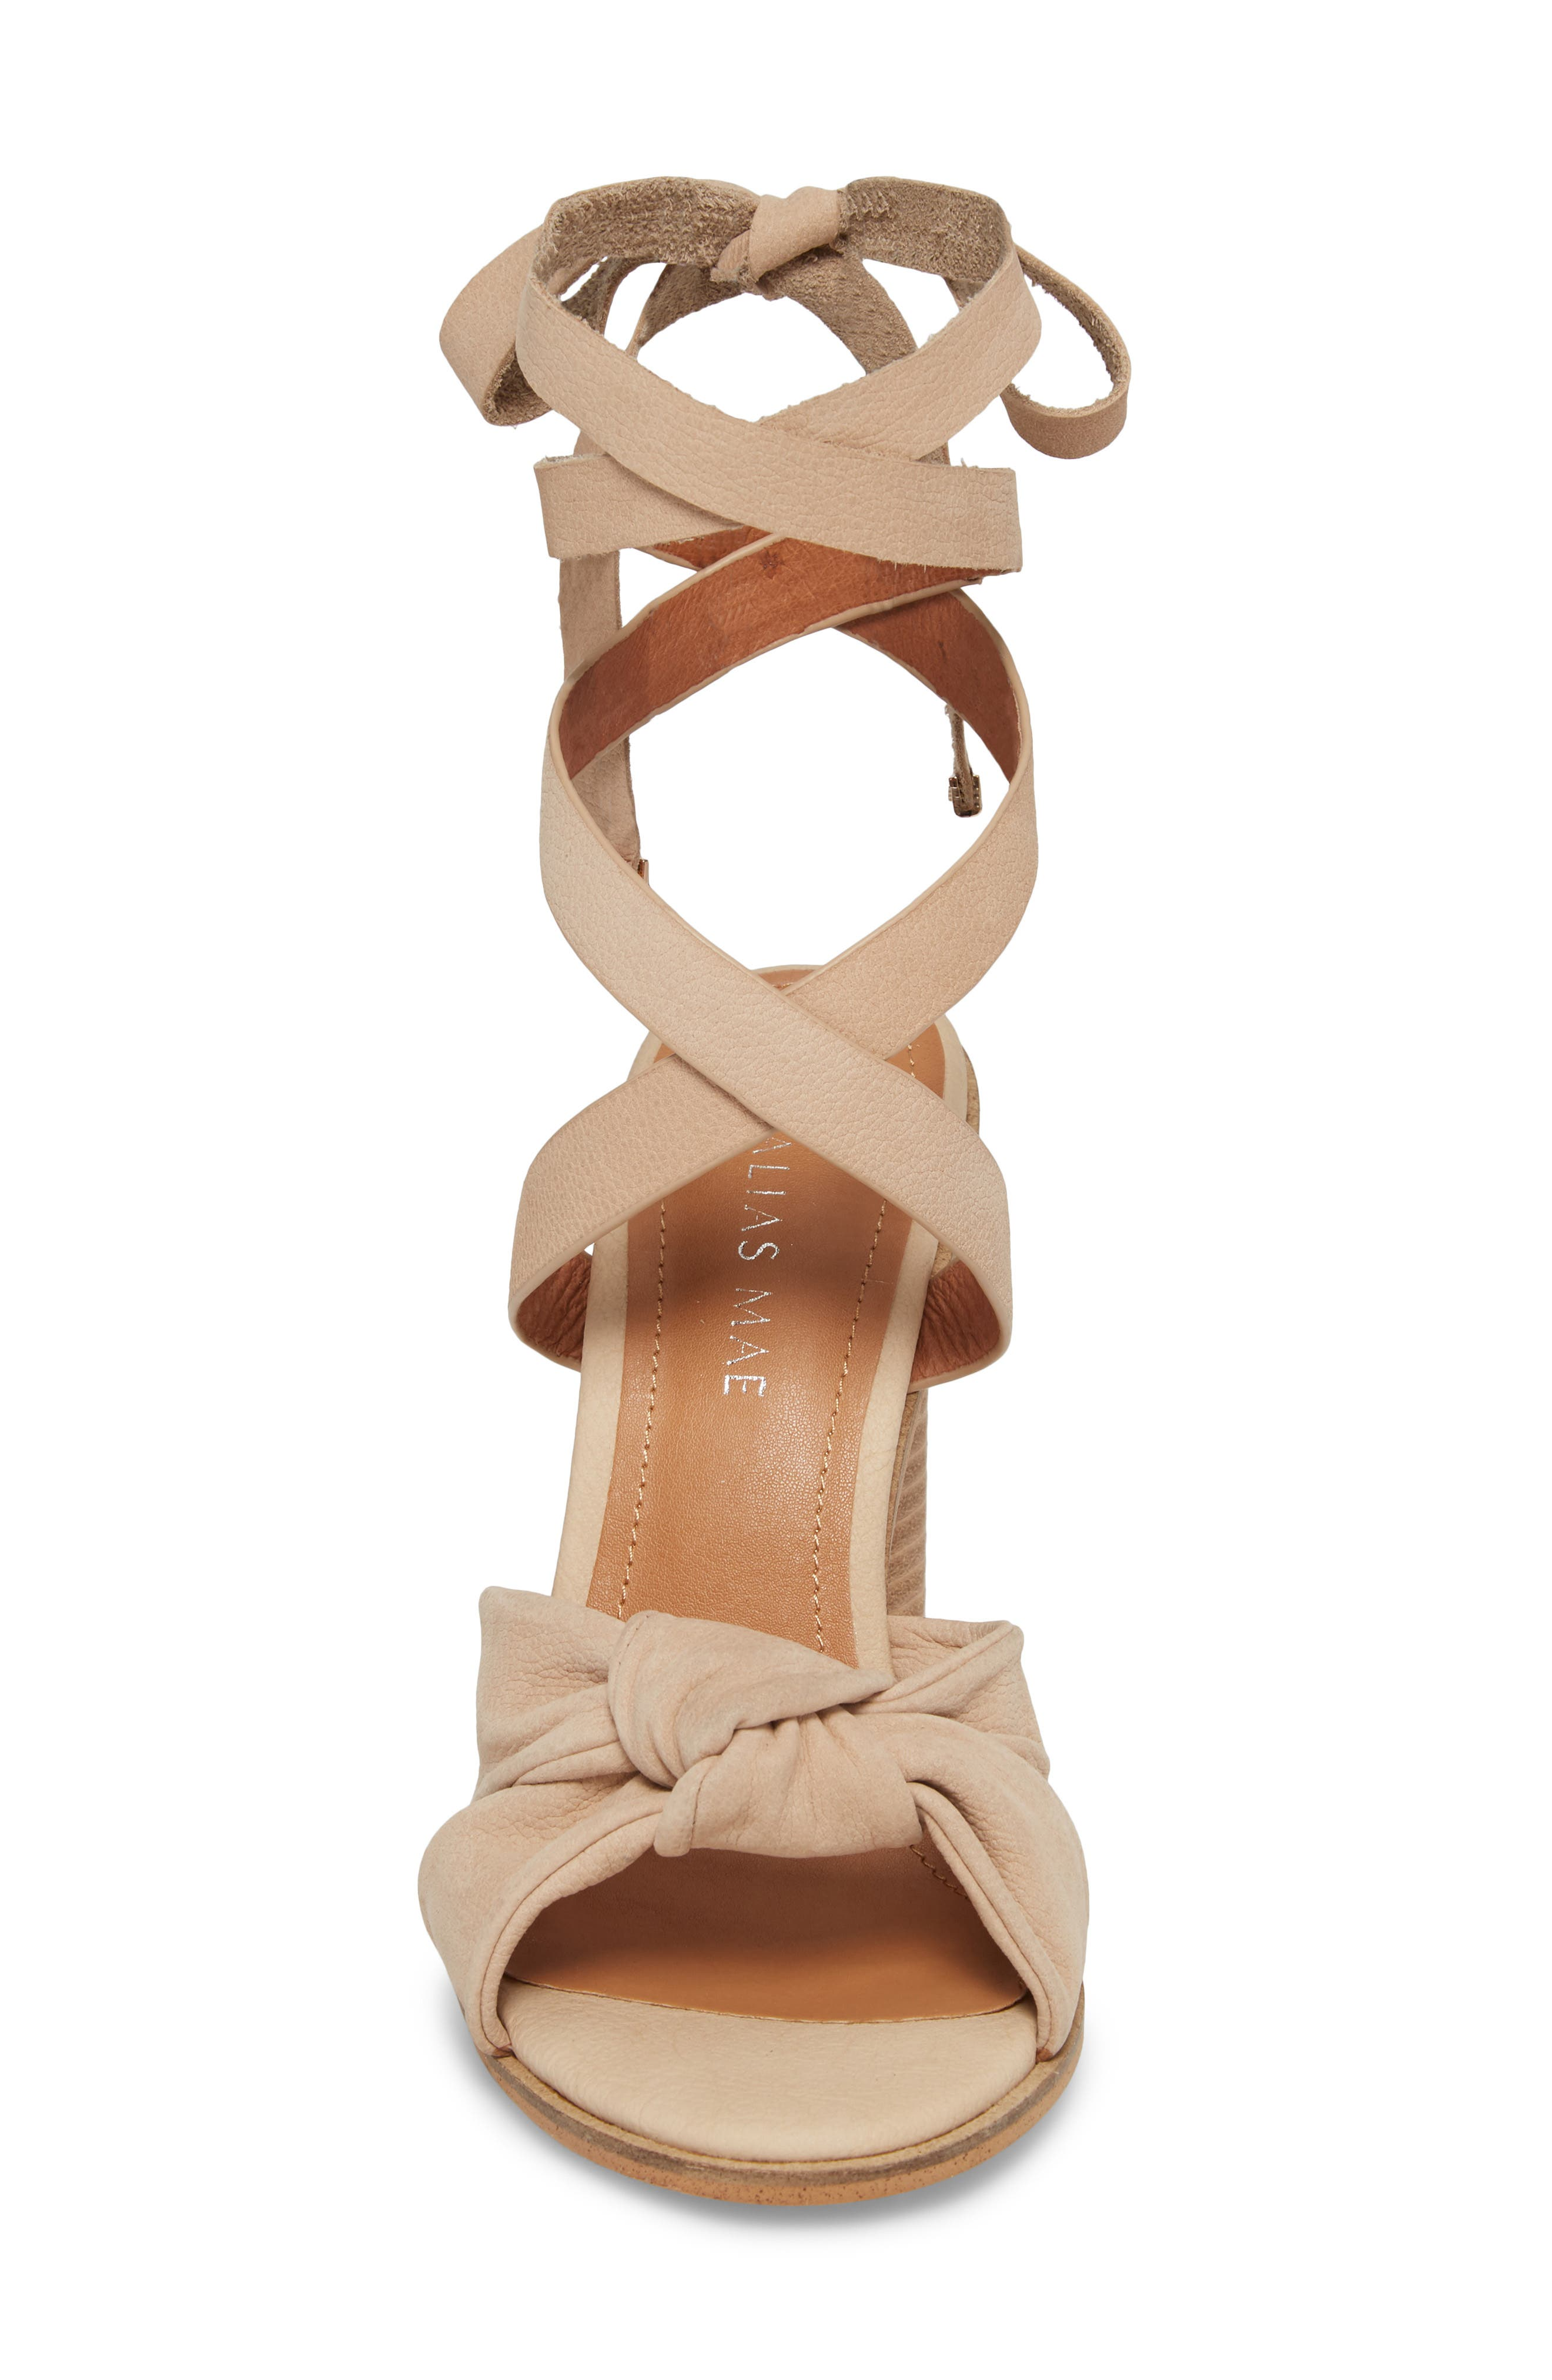 Africa Ankle Wrap Sandal,                             Alternate thumbnail 4, color,                             Natural Leather